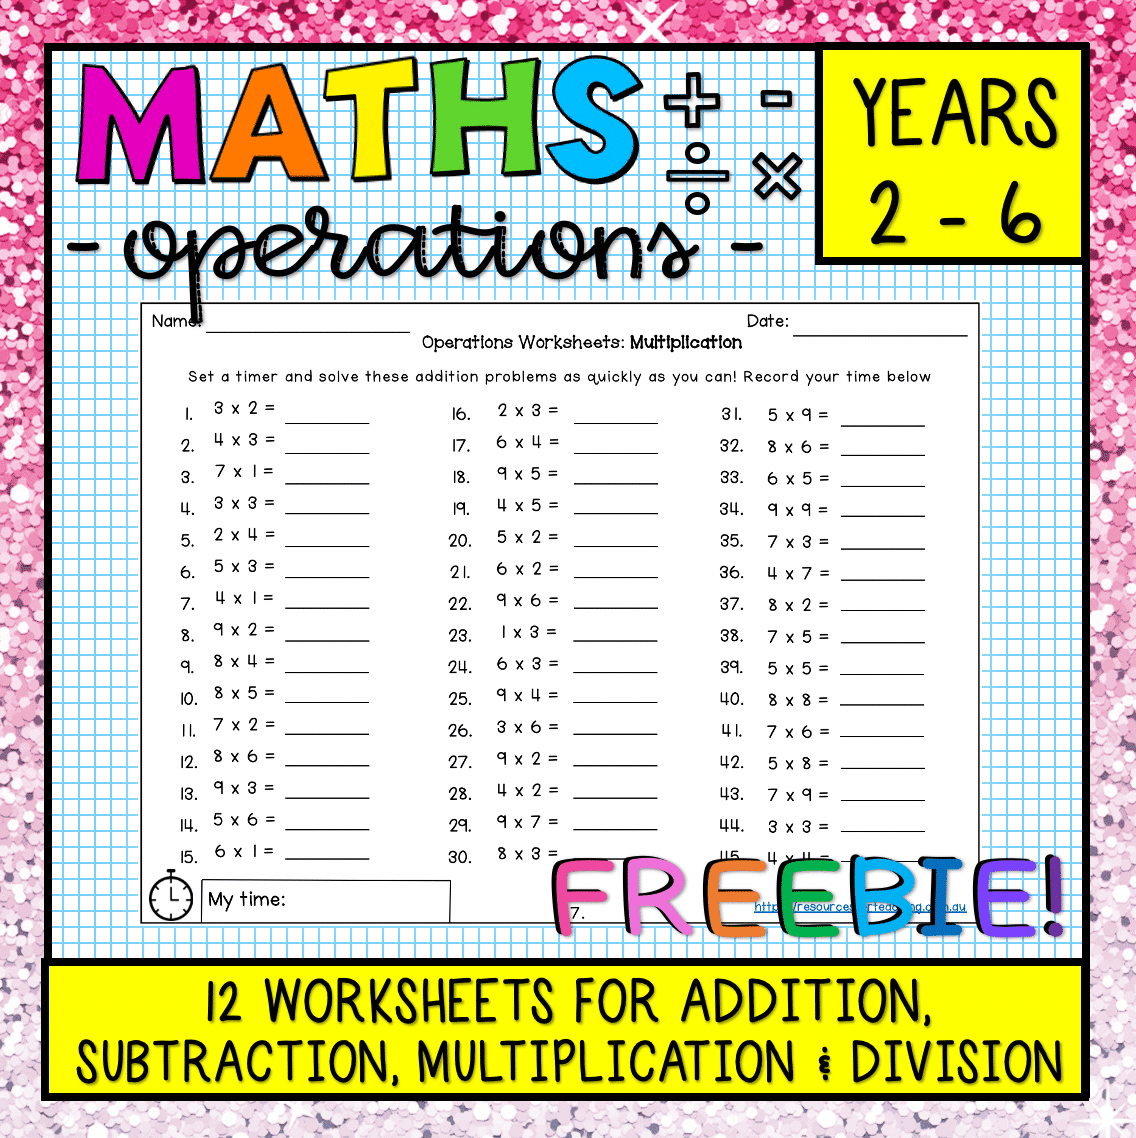 Maths Operations Worksheets Freebie